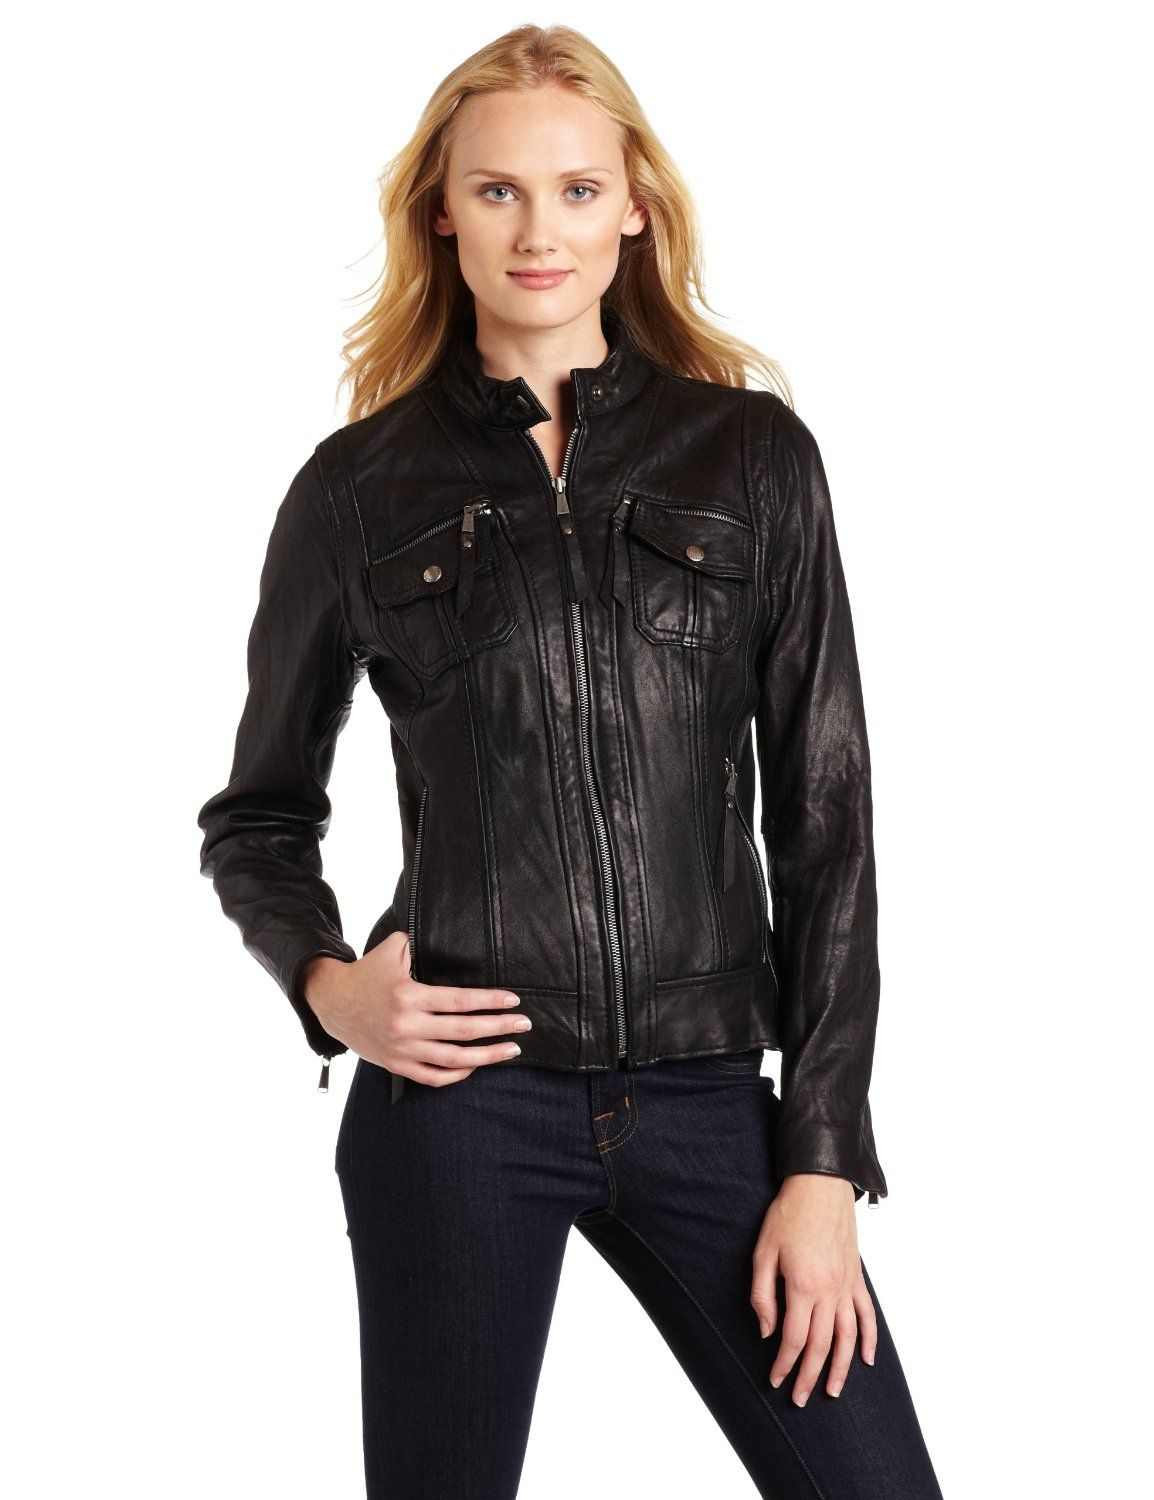 Clothing Michael Michael Kors Leather Jacket Soft And Buttery Leather With Sleek Lines And A Fitted Look This Looks Supe Leather Jacket Fashion Michael Kors [ 1500 x 1154 Pixel ]